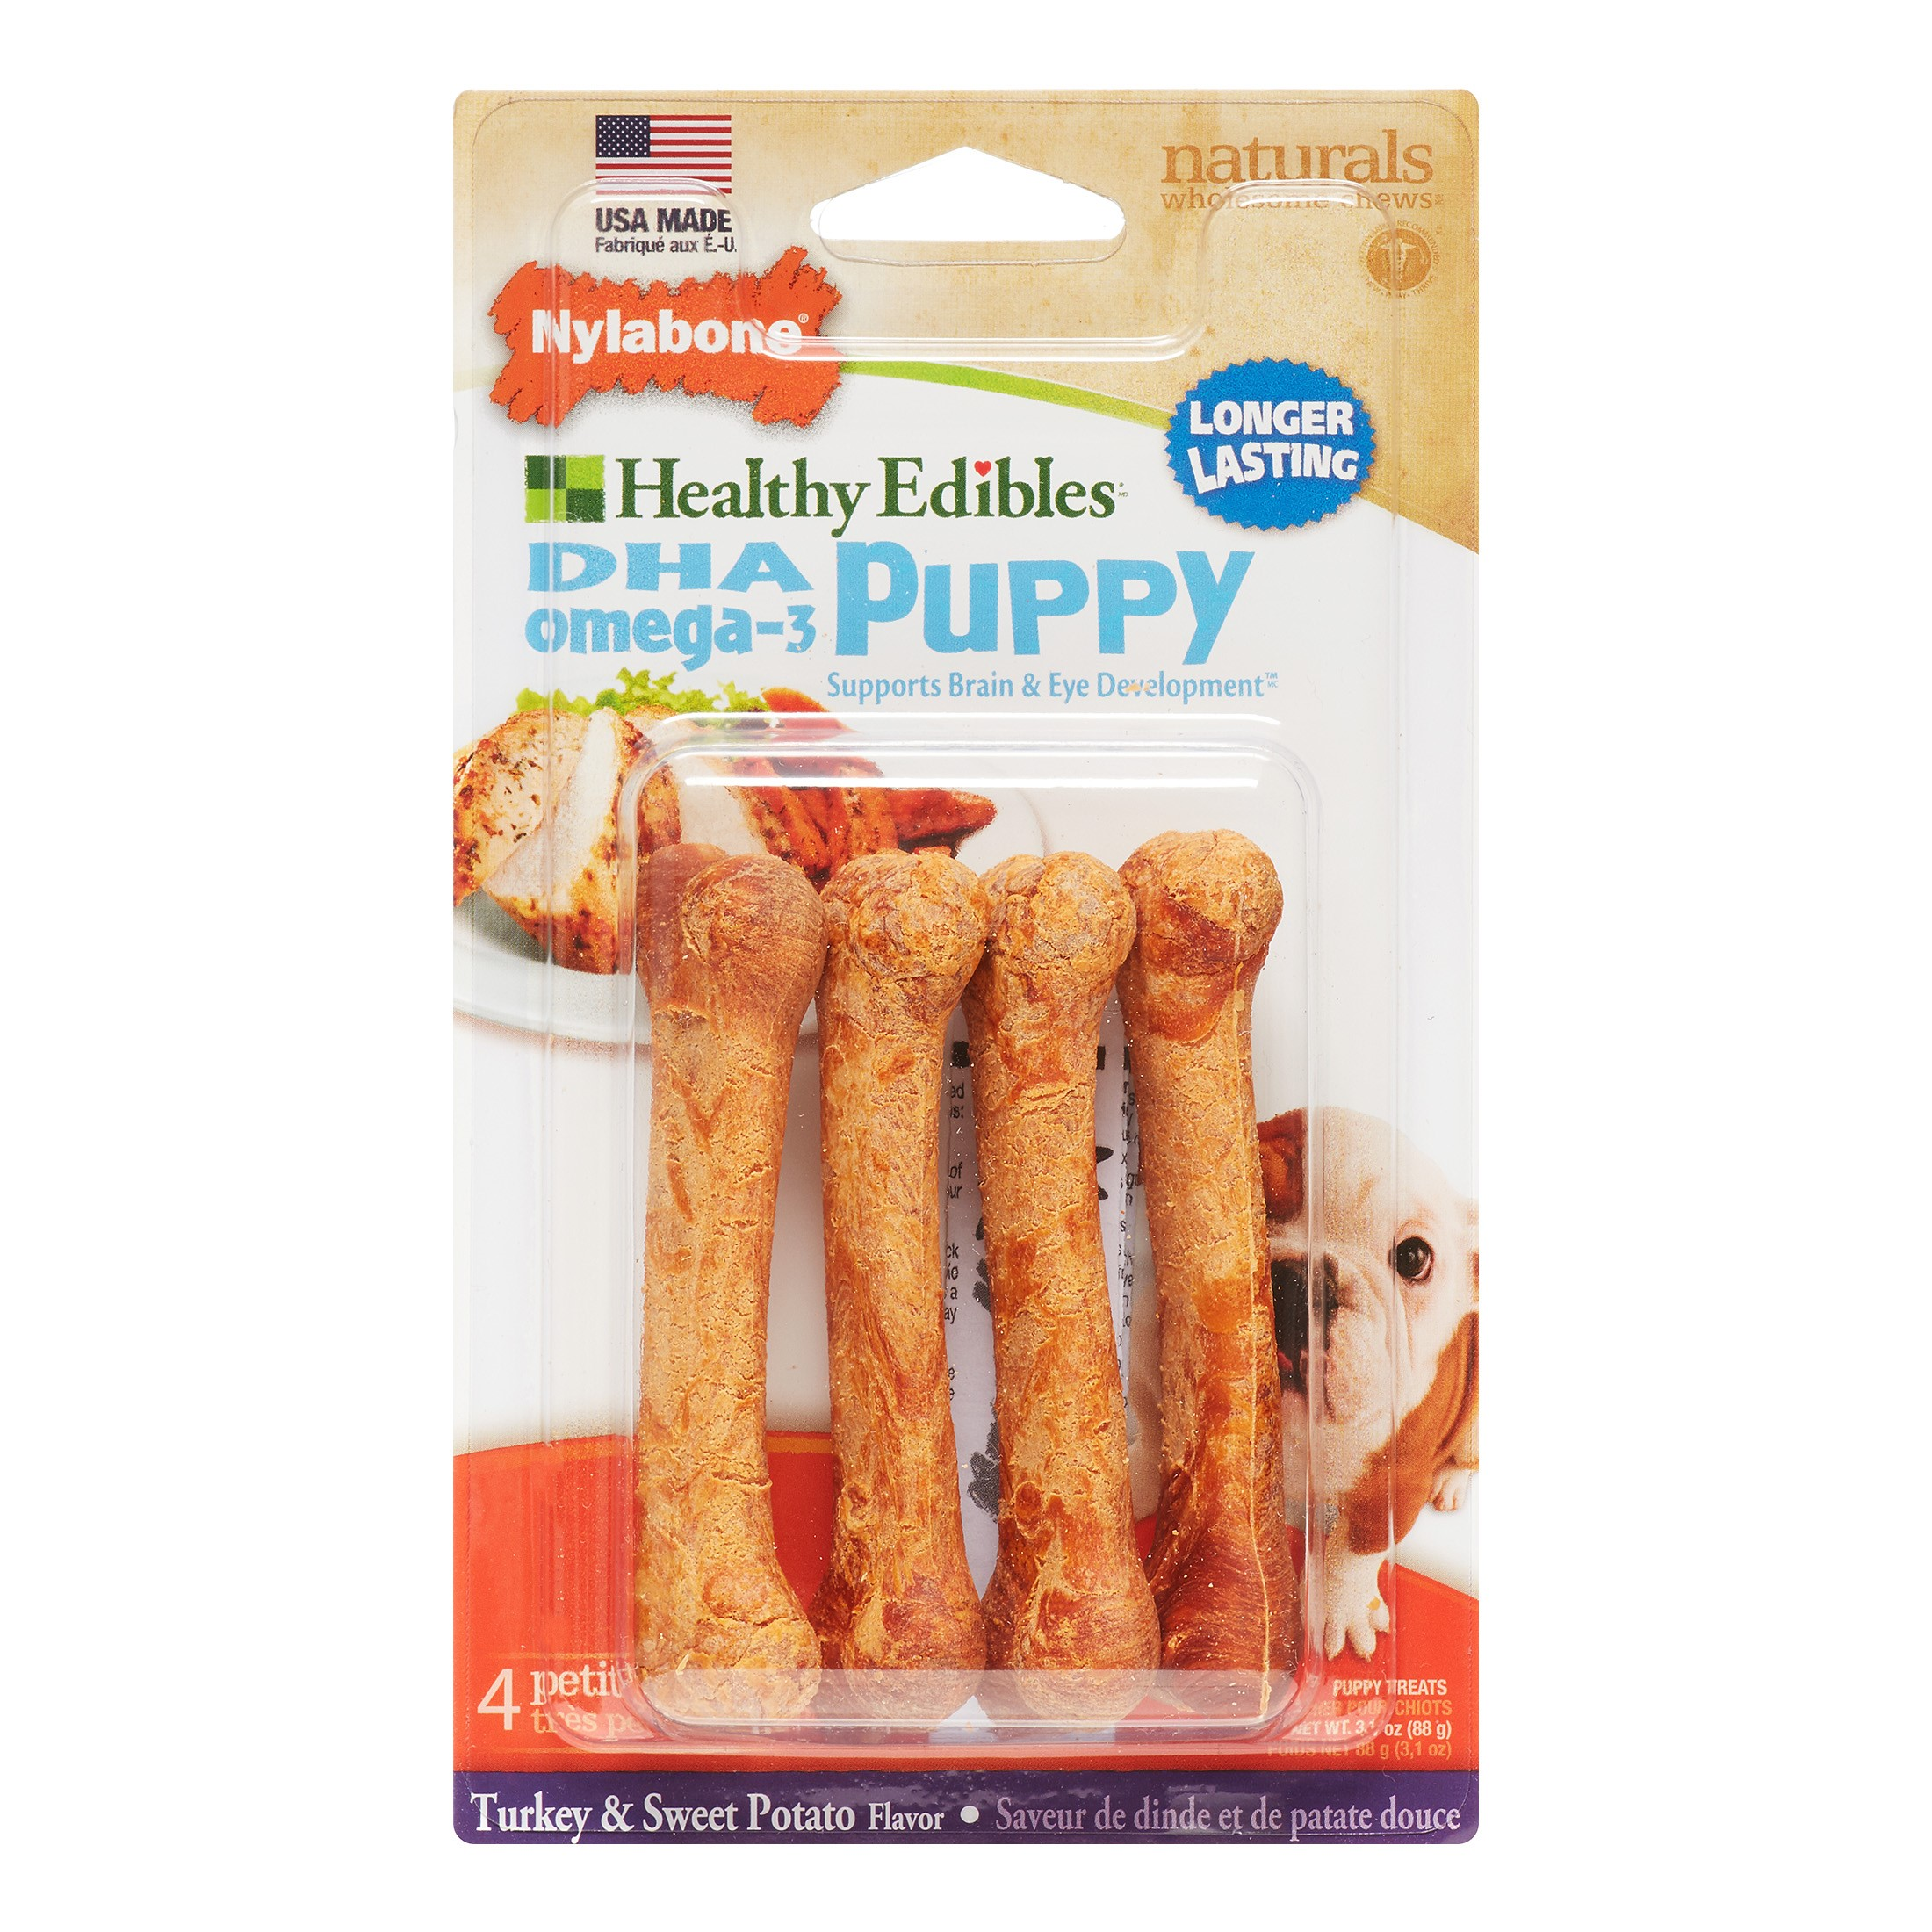 Nylabone Healthy Edibles Chews Petite Sweet Potato & Turkey Puppy Dog Treats, 4 Ct